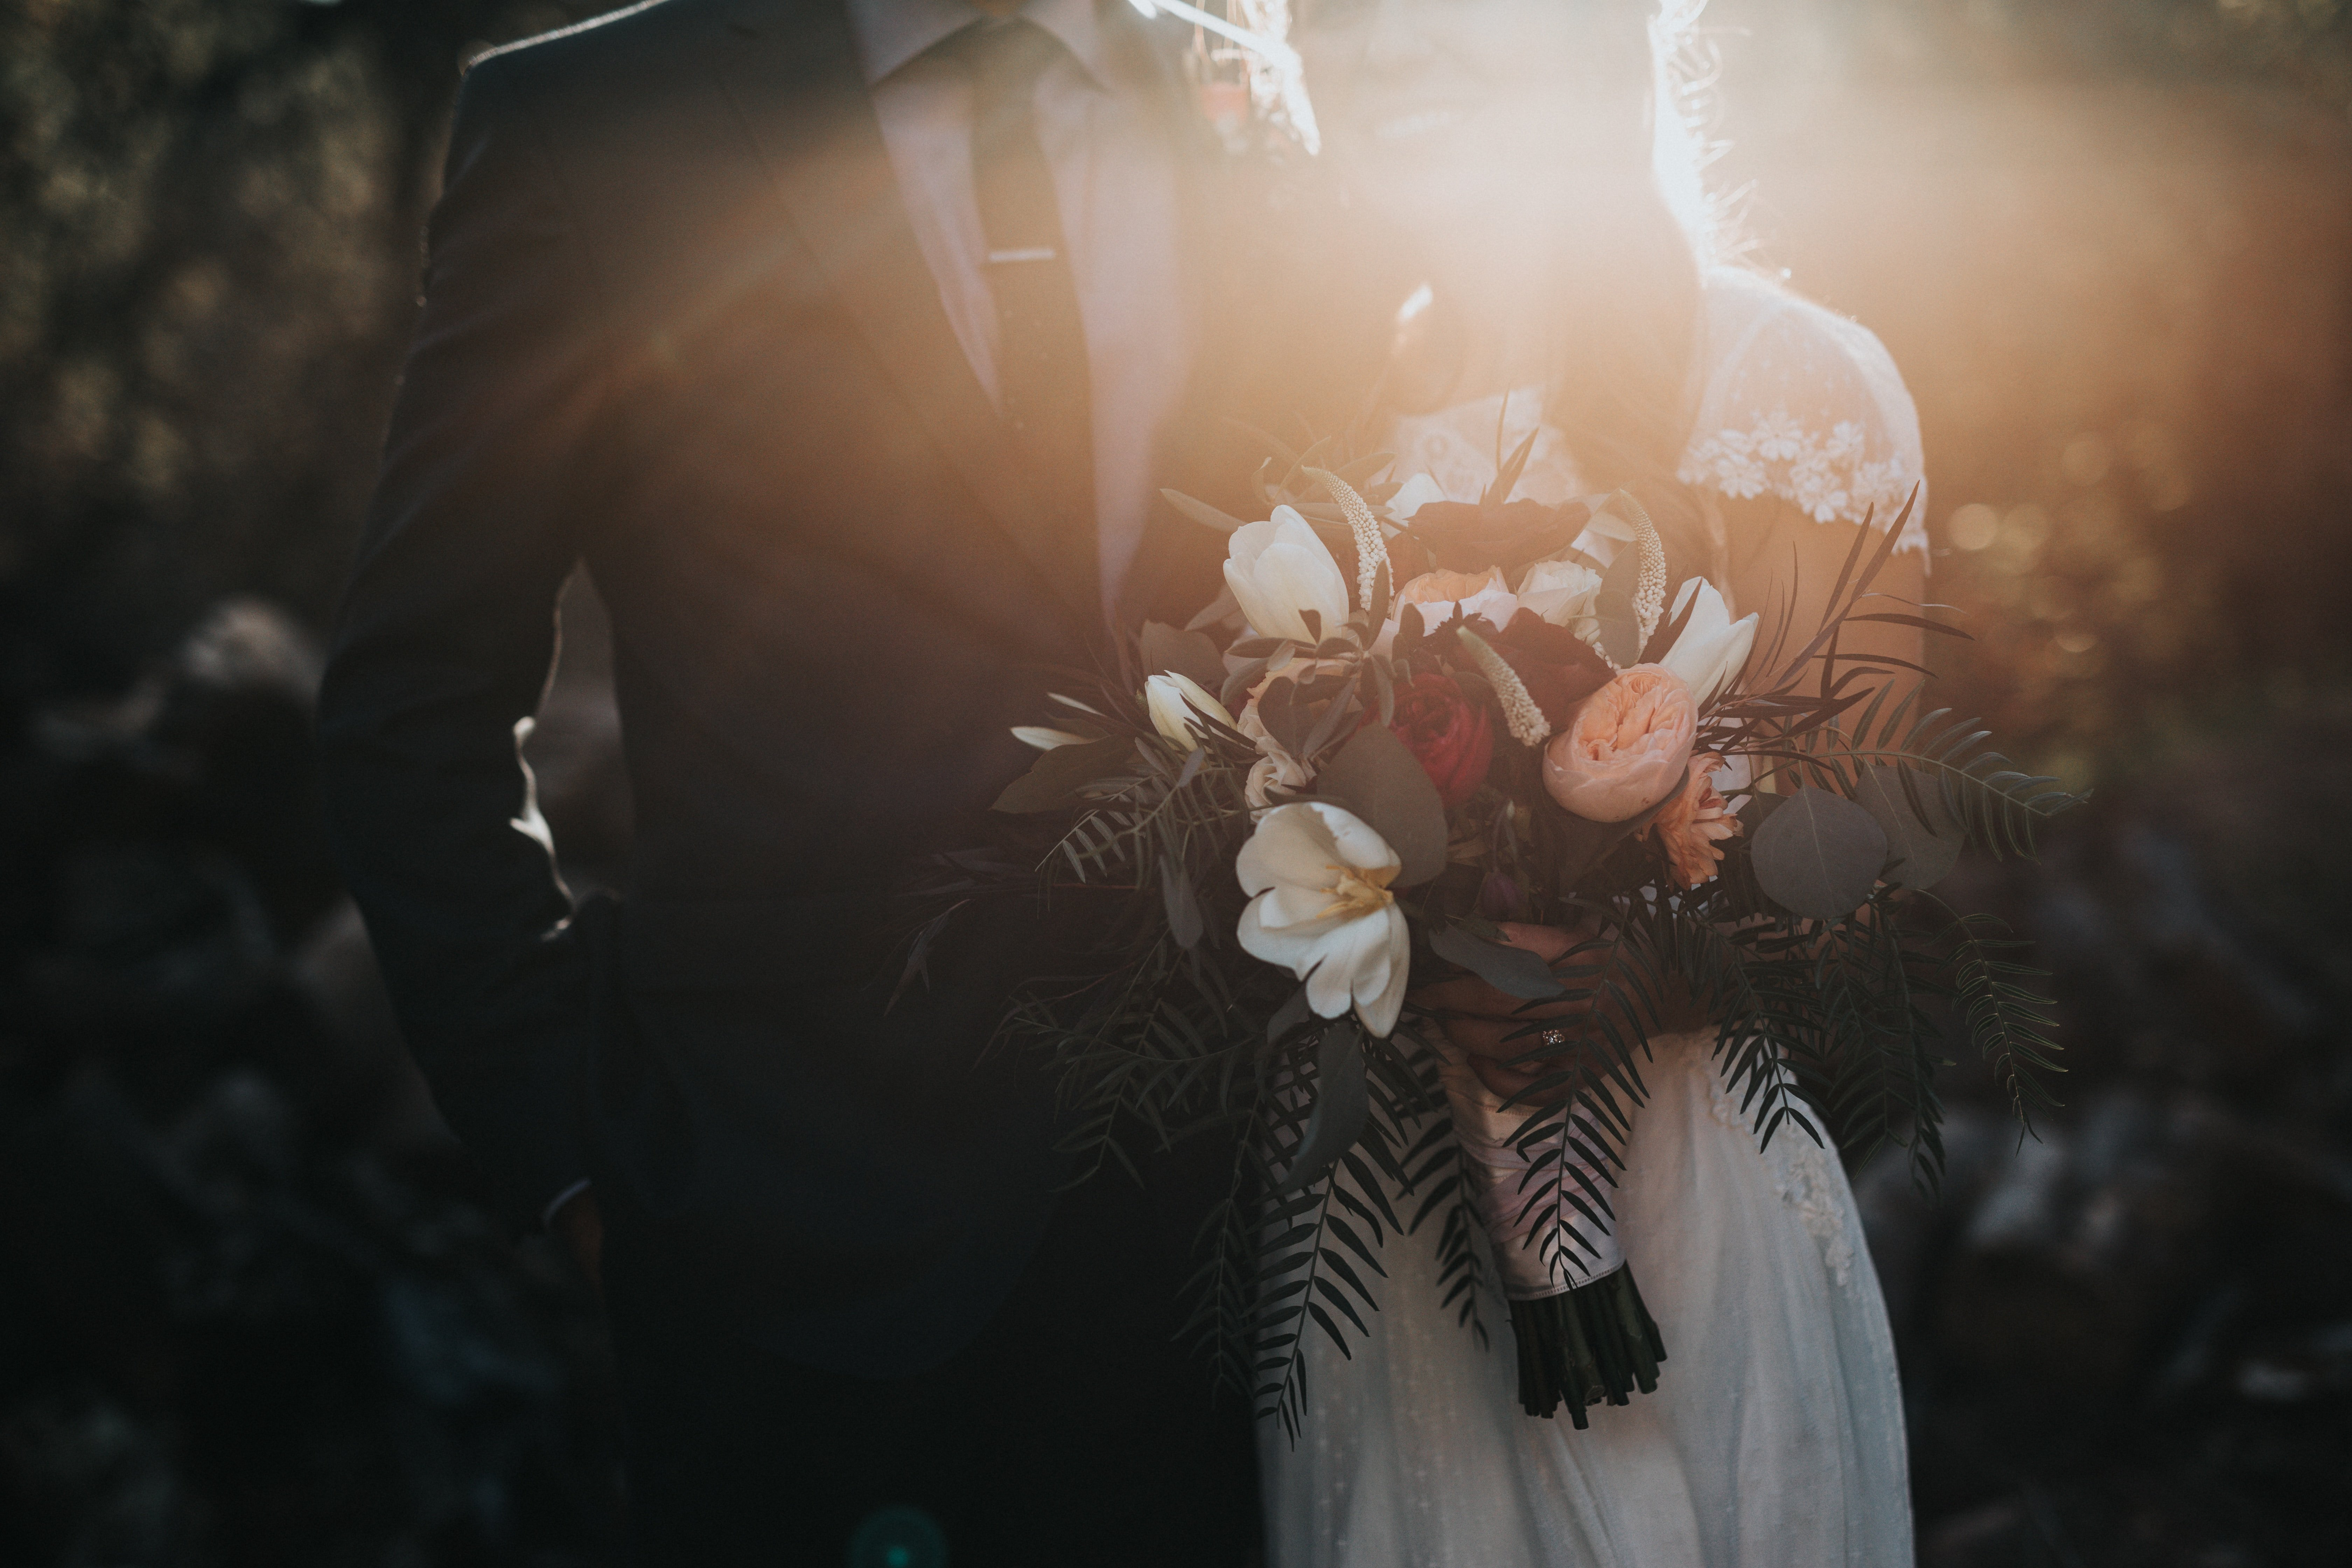 A couple on their wedding day | Source: Unsplash